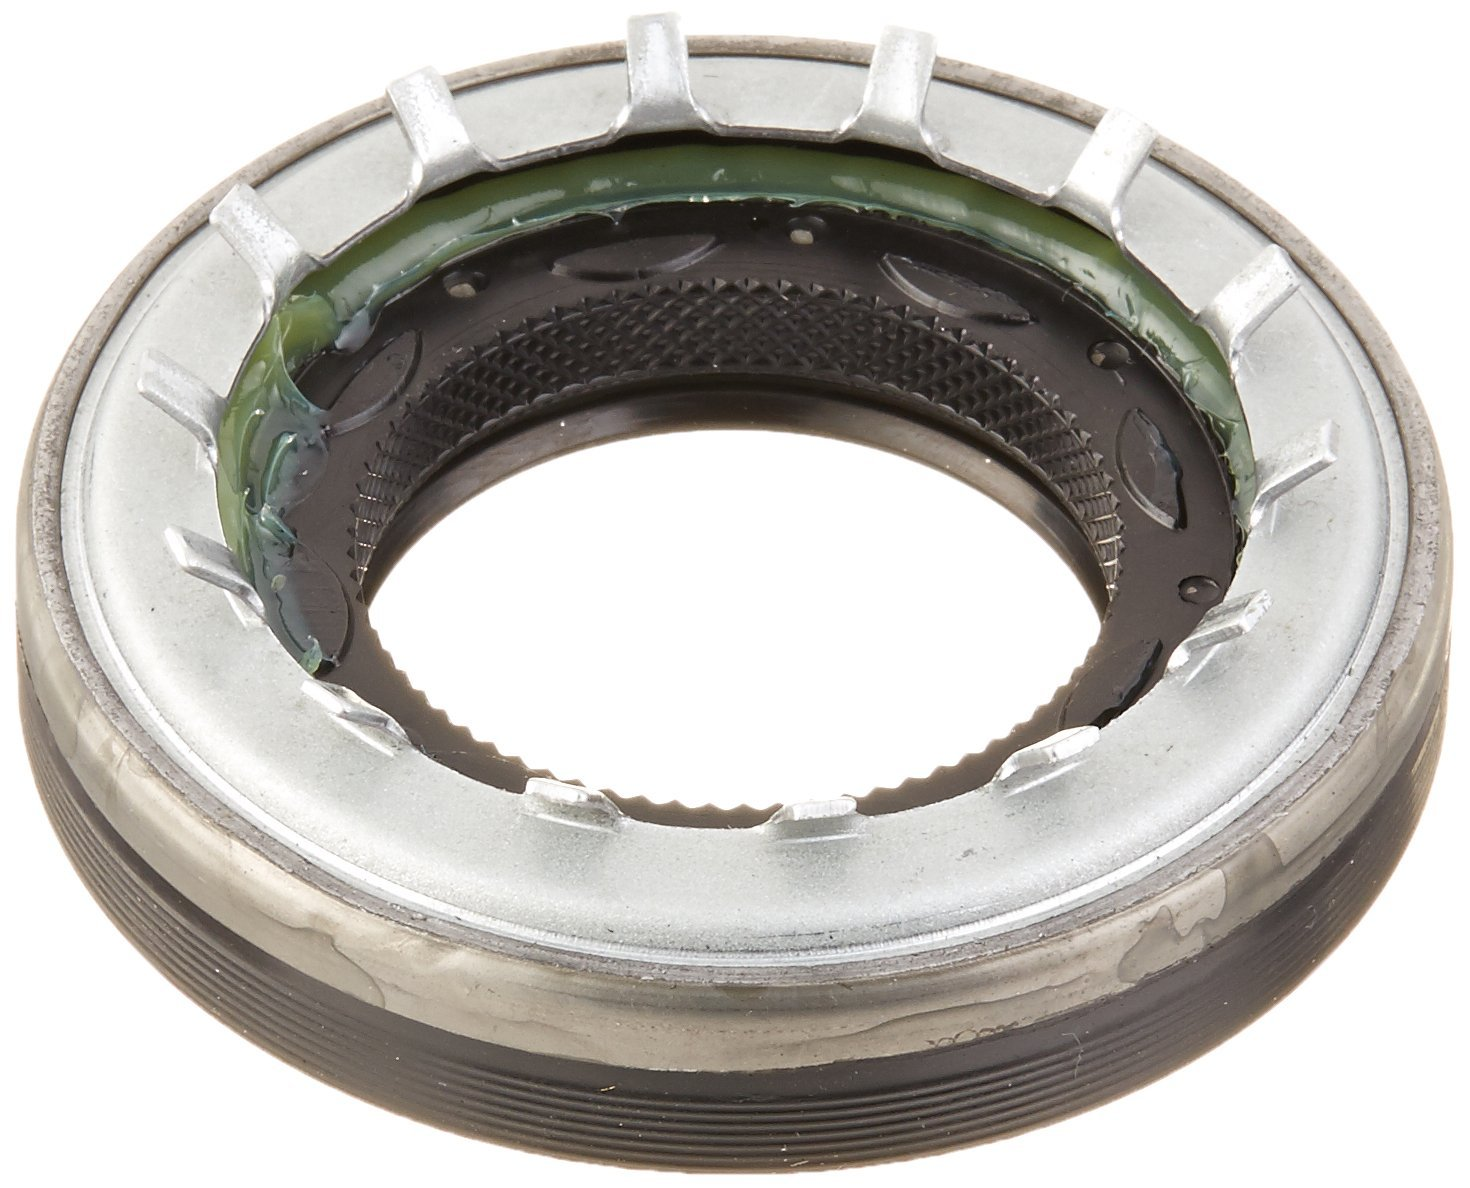 Genuine GM 19257296 Axle Inner Shaft Seal, Designed to meet or exceed  original part specifications By General Motors Ship from US